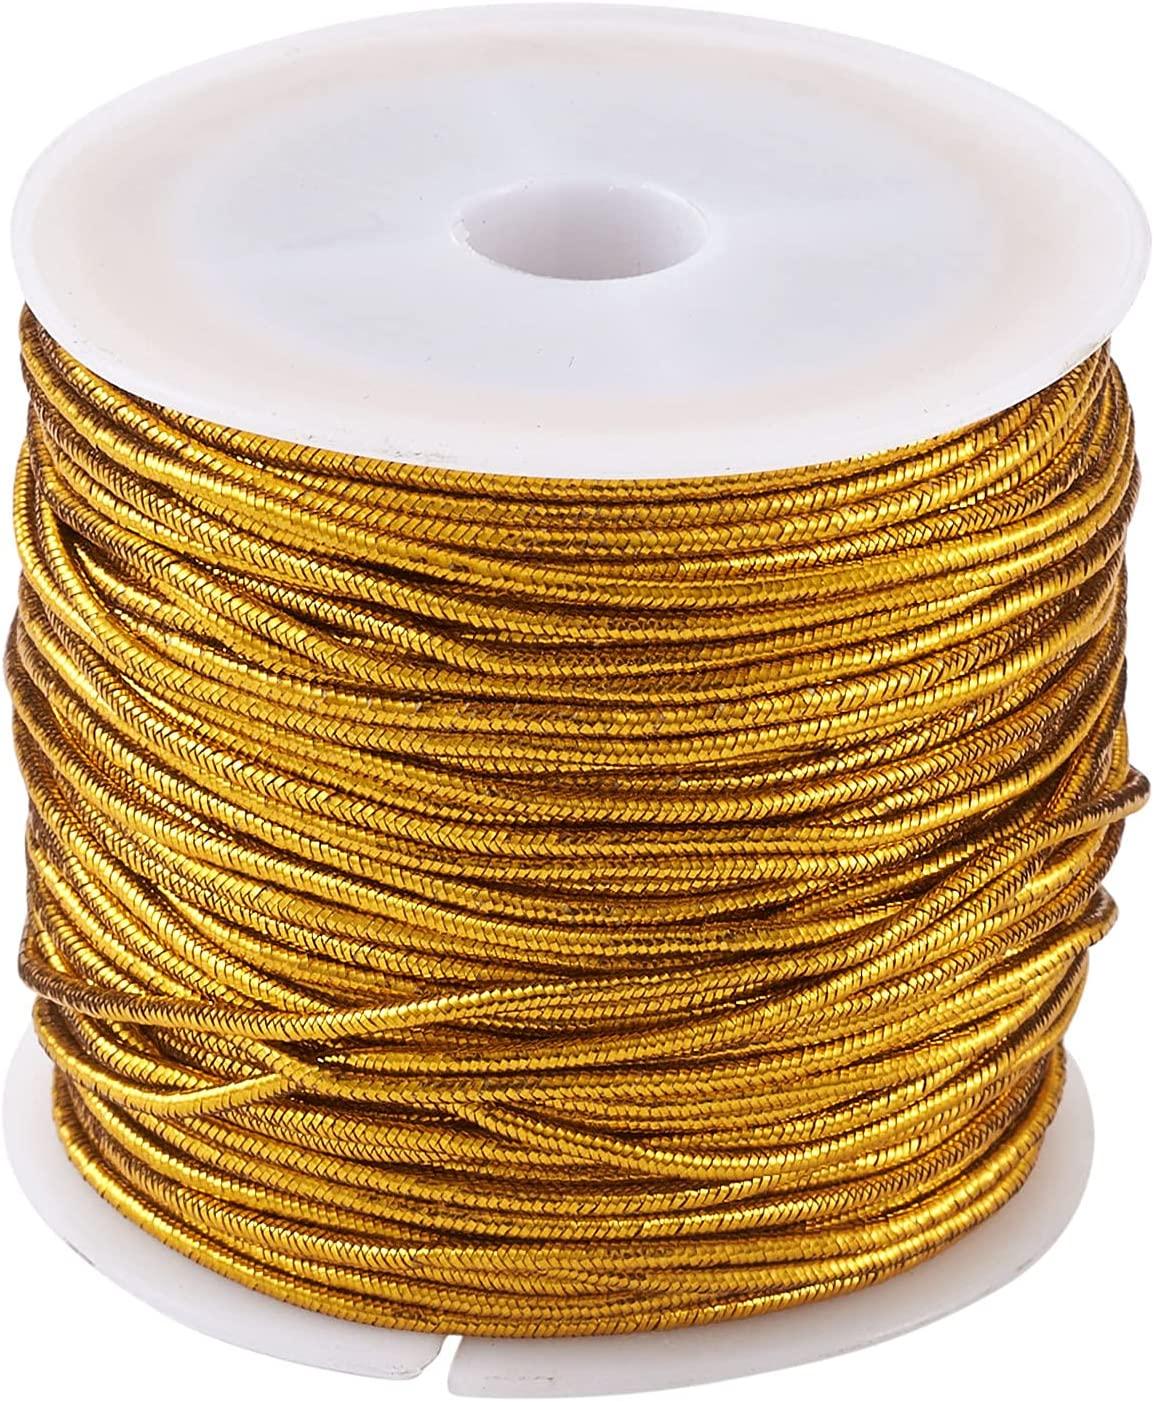 3 Rolls Now free shipping Metallic Elastic Cord Threads Polyester Golden Tinsel Ro Ranking TOP16